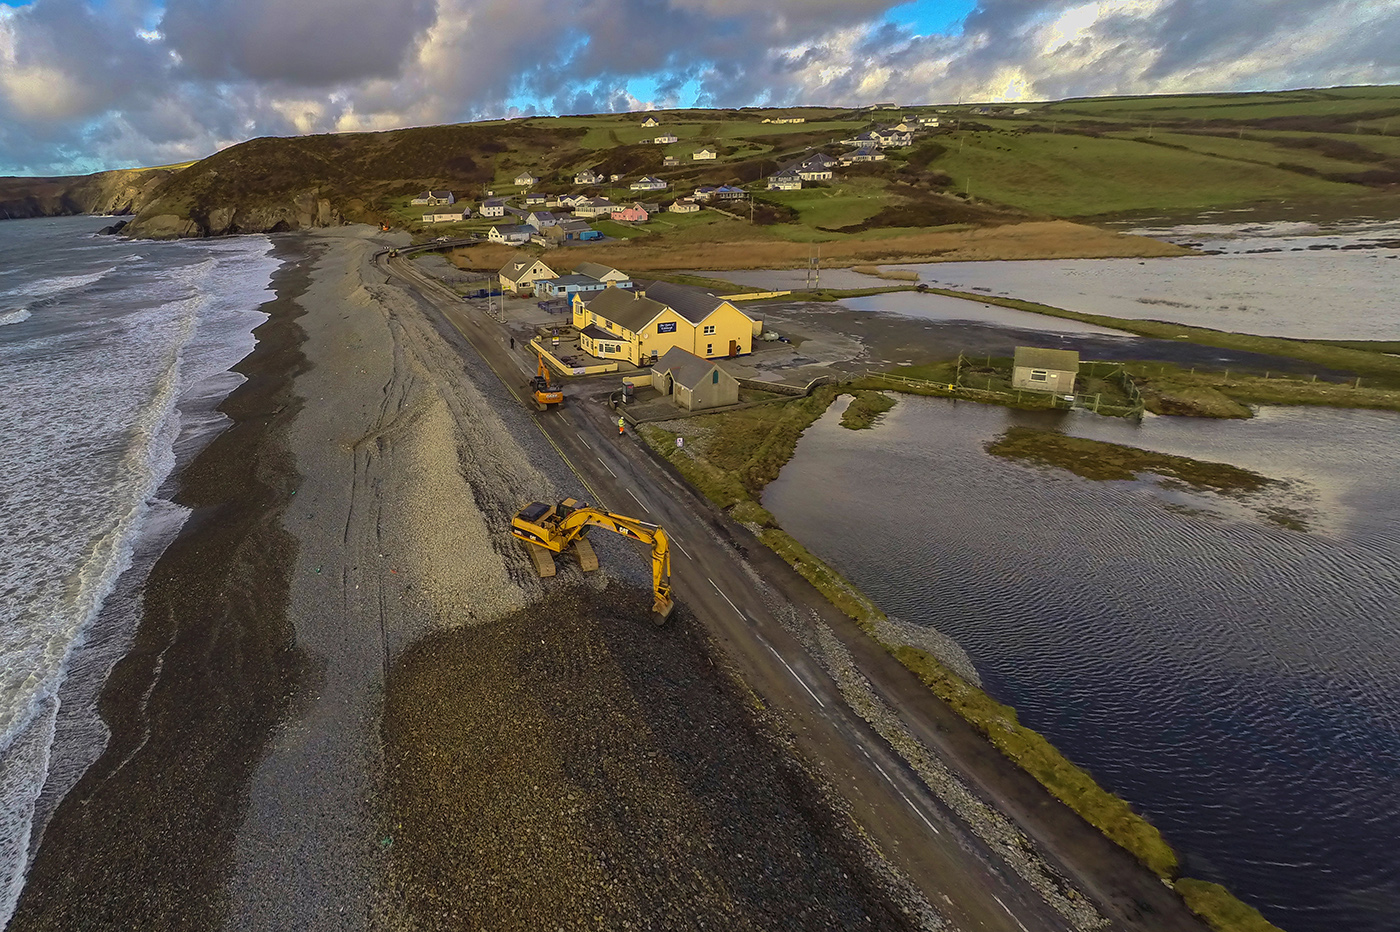 Newgale road expected to re-open on Friday evening